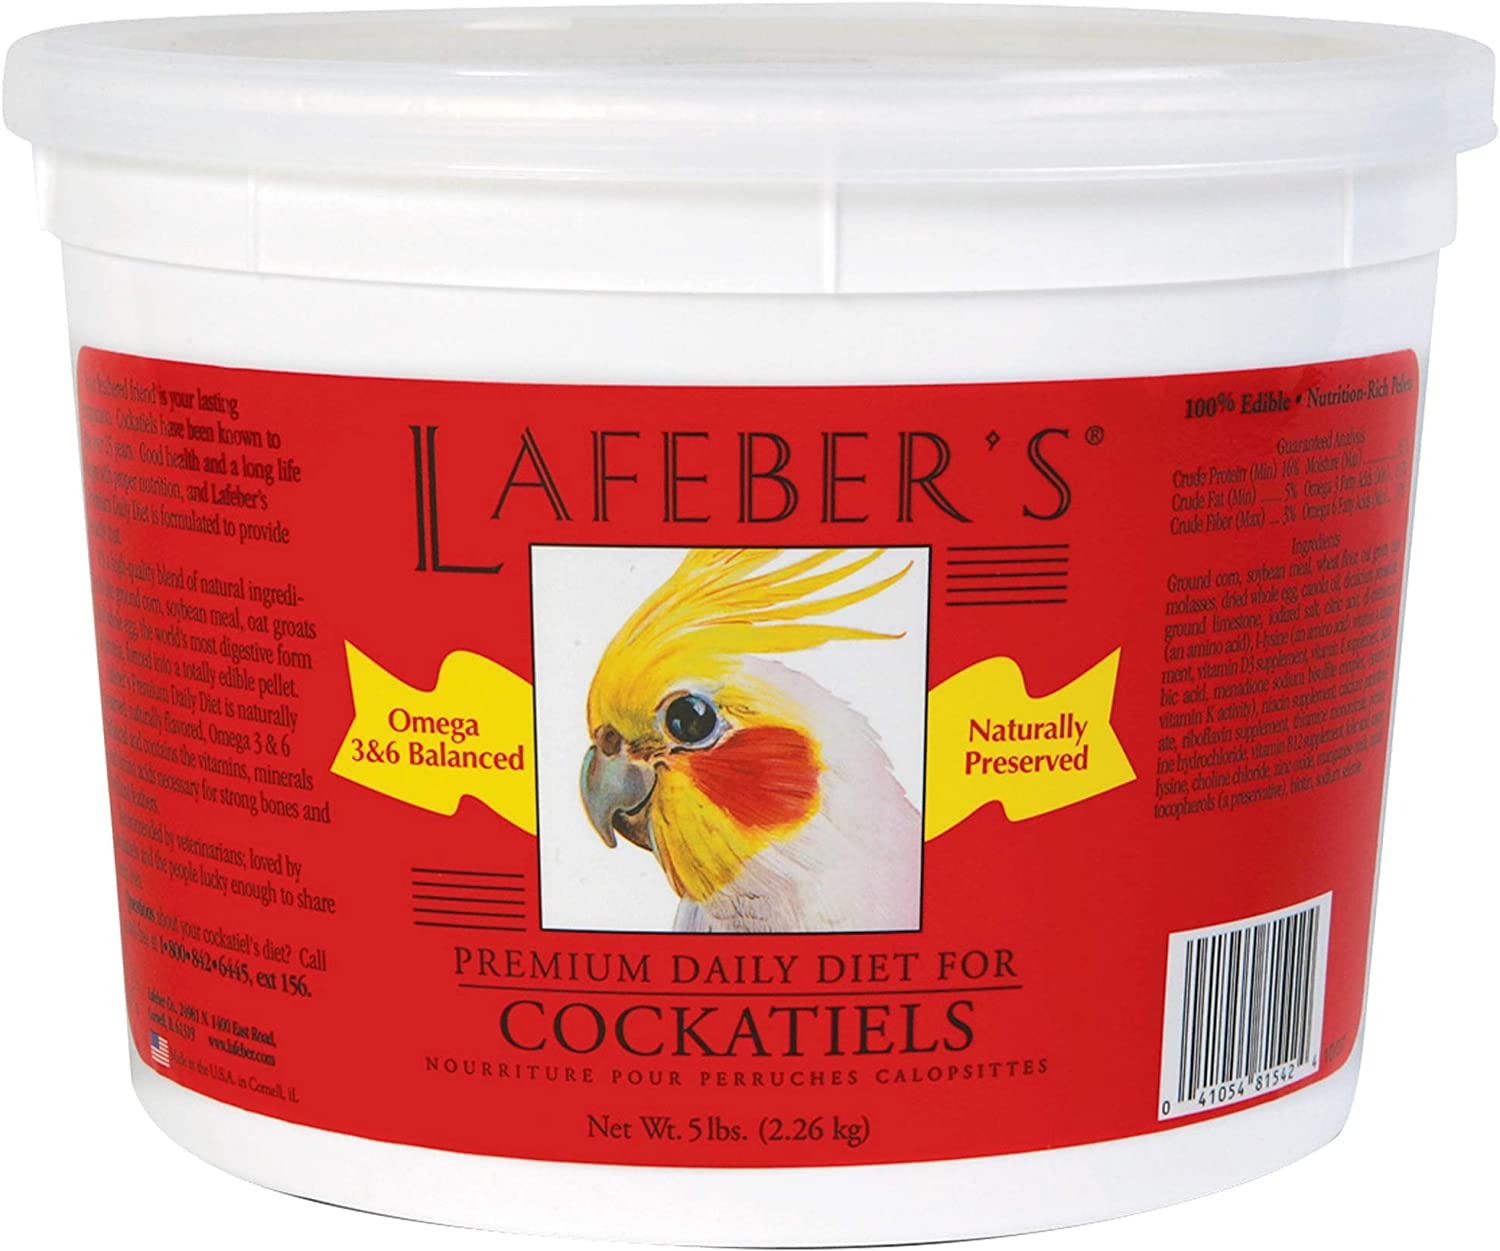 LAFEBER'S Premium Daily Diet or Gourmet Fruit Pellets Pet Bird Food, Made with Non-GMO and Human-Grade Ingredients, for Cockatiels